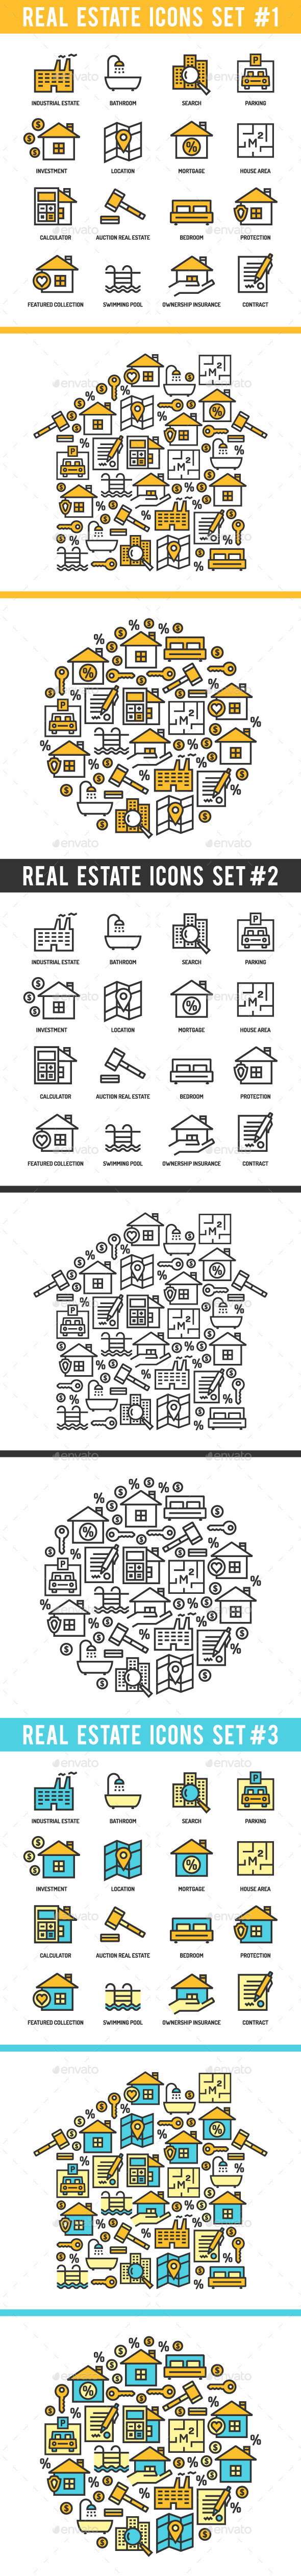 Real Estate Icons Set - Business Icons